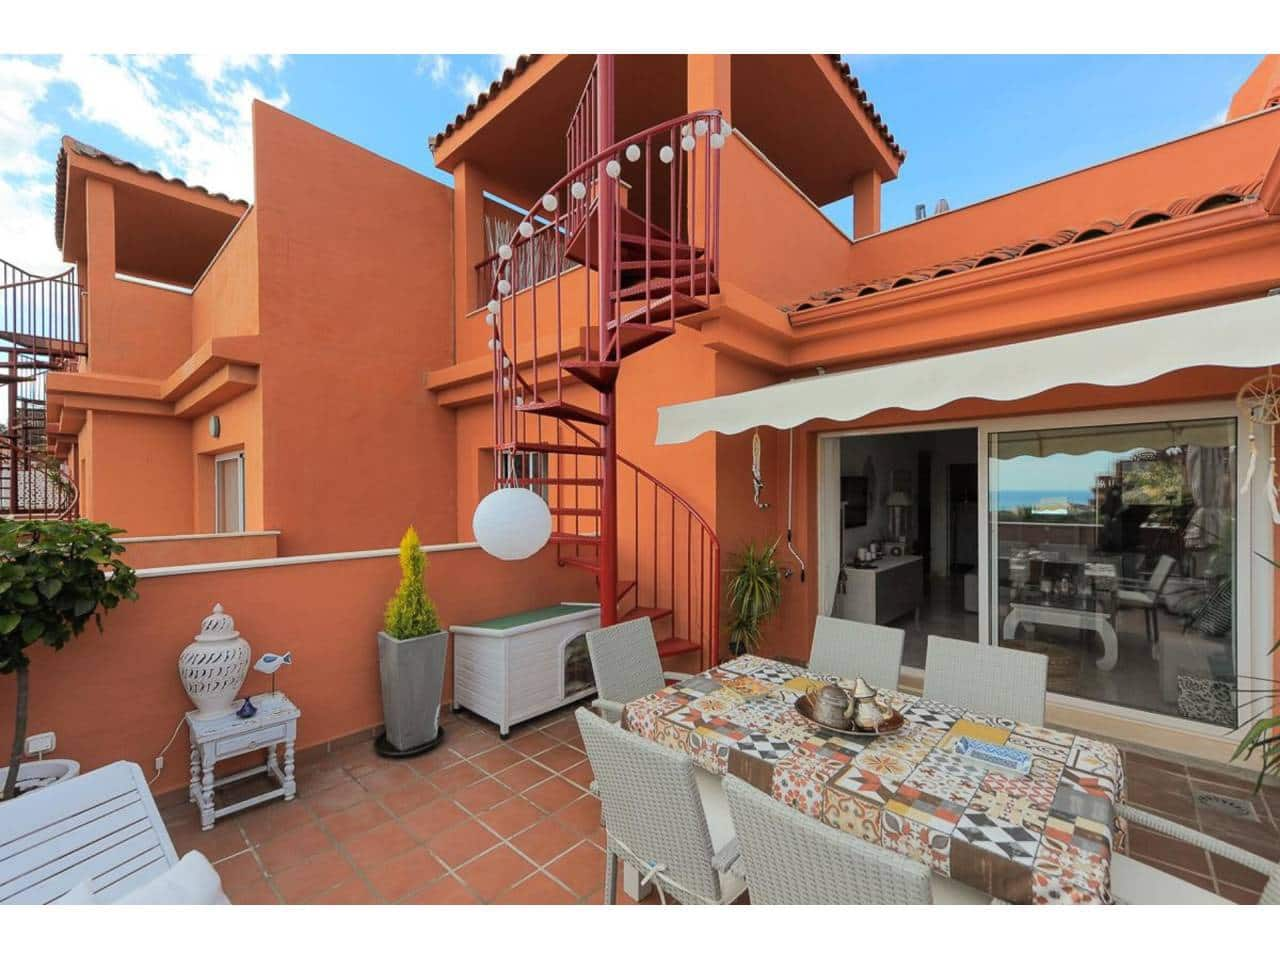 2 bedroom Penthouse for sale in Marbella - € 225,000 (Ref: 5111249)